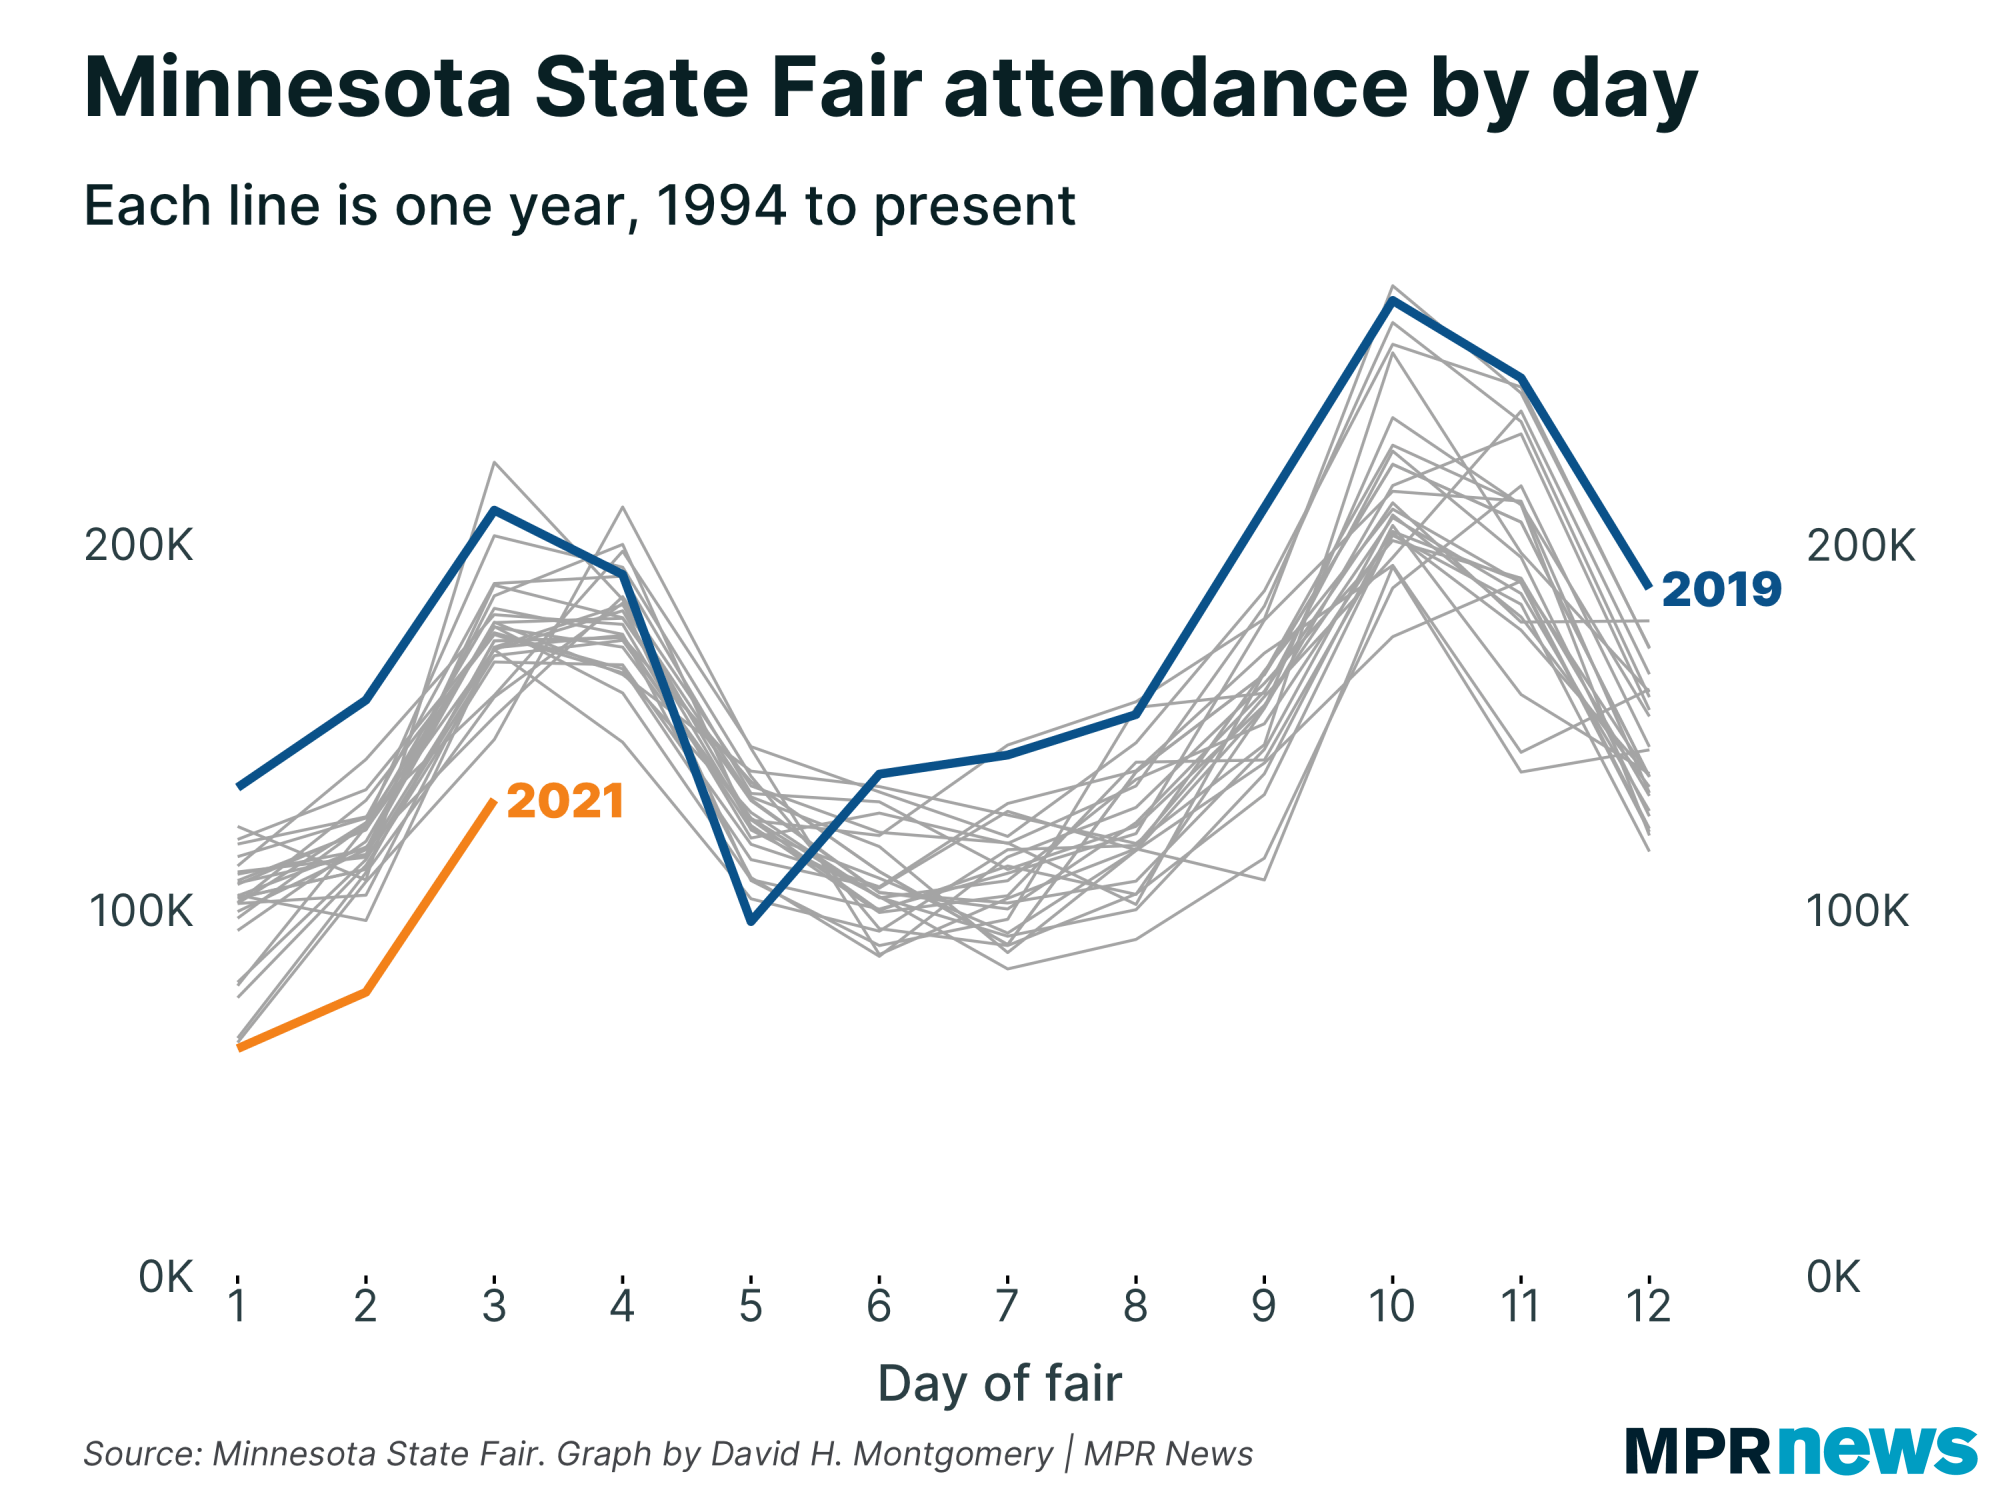 A graph showing attendance at the Minnesota State Fair